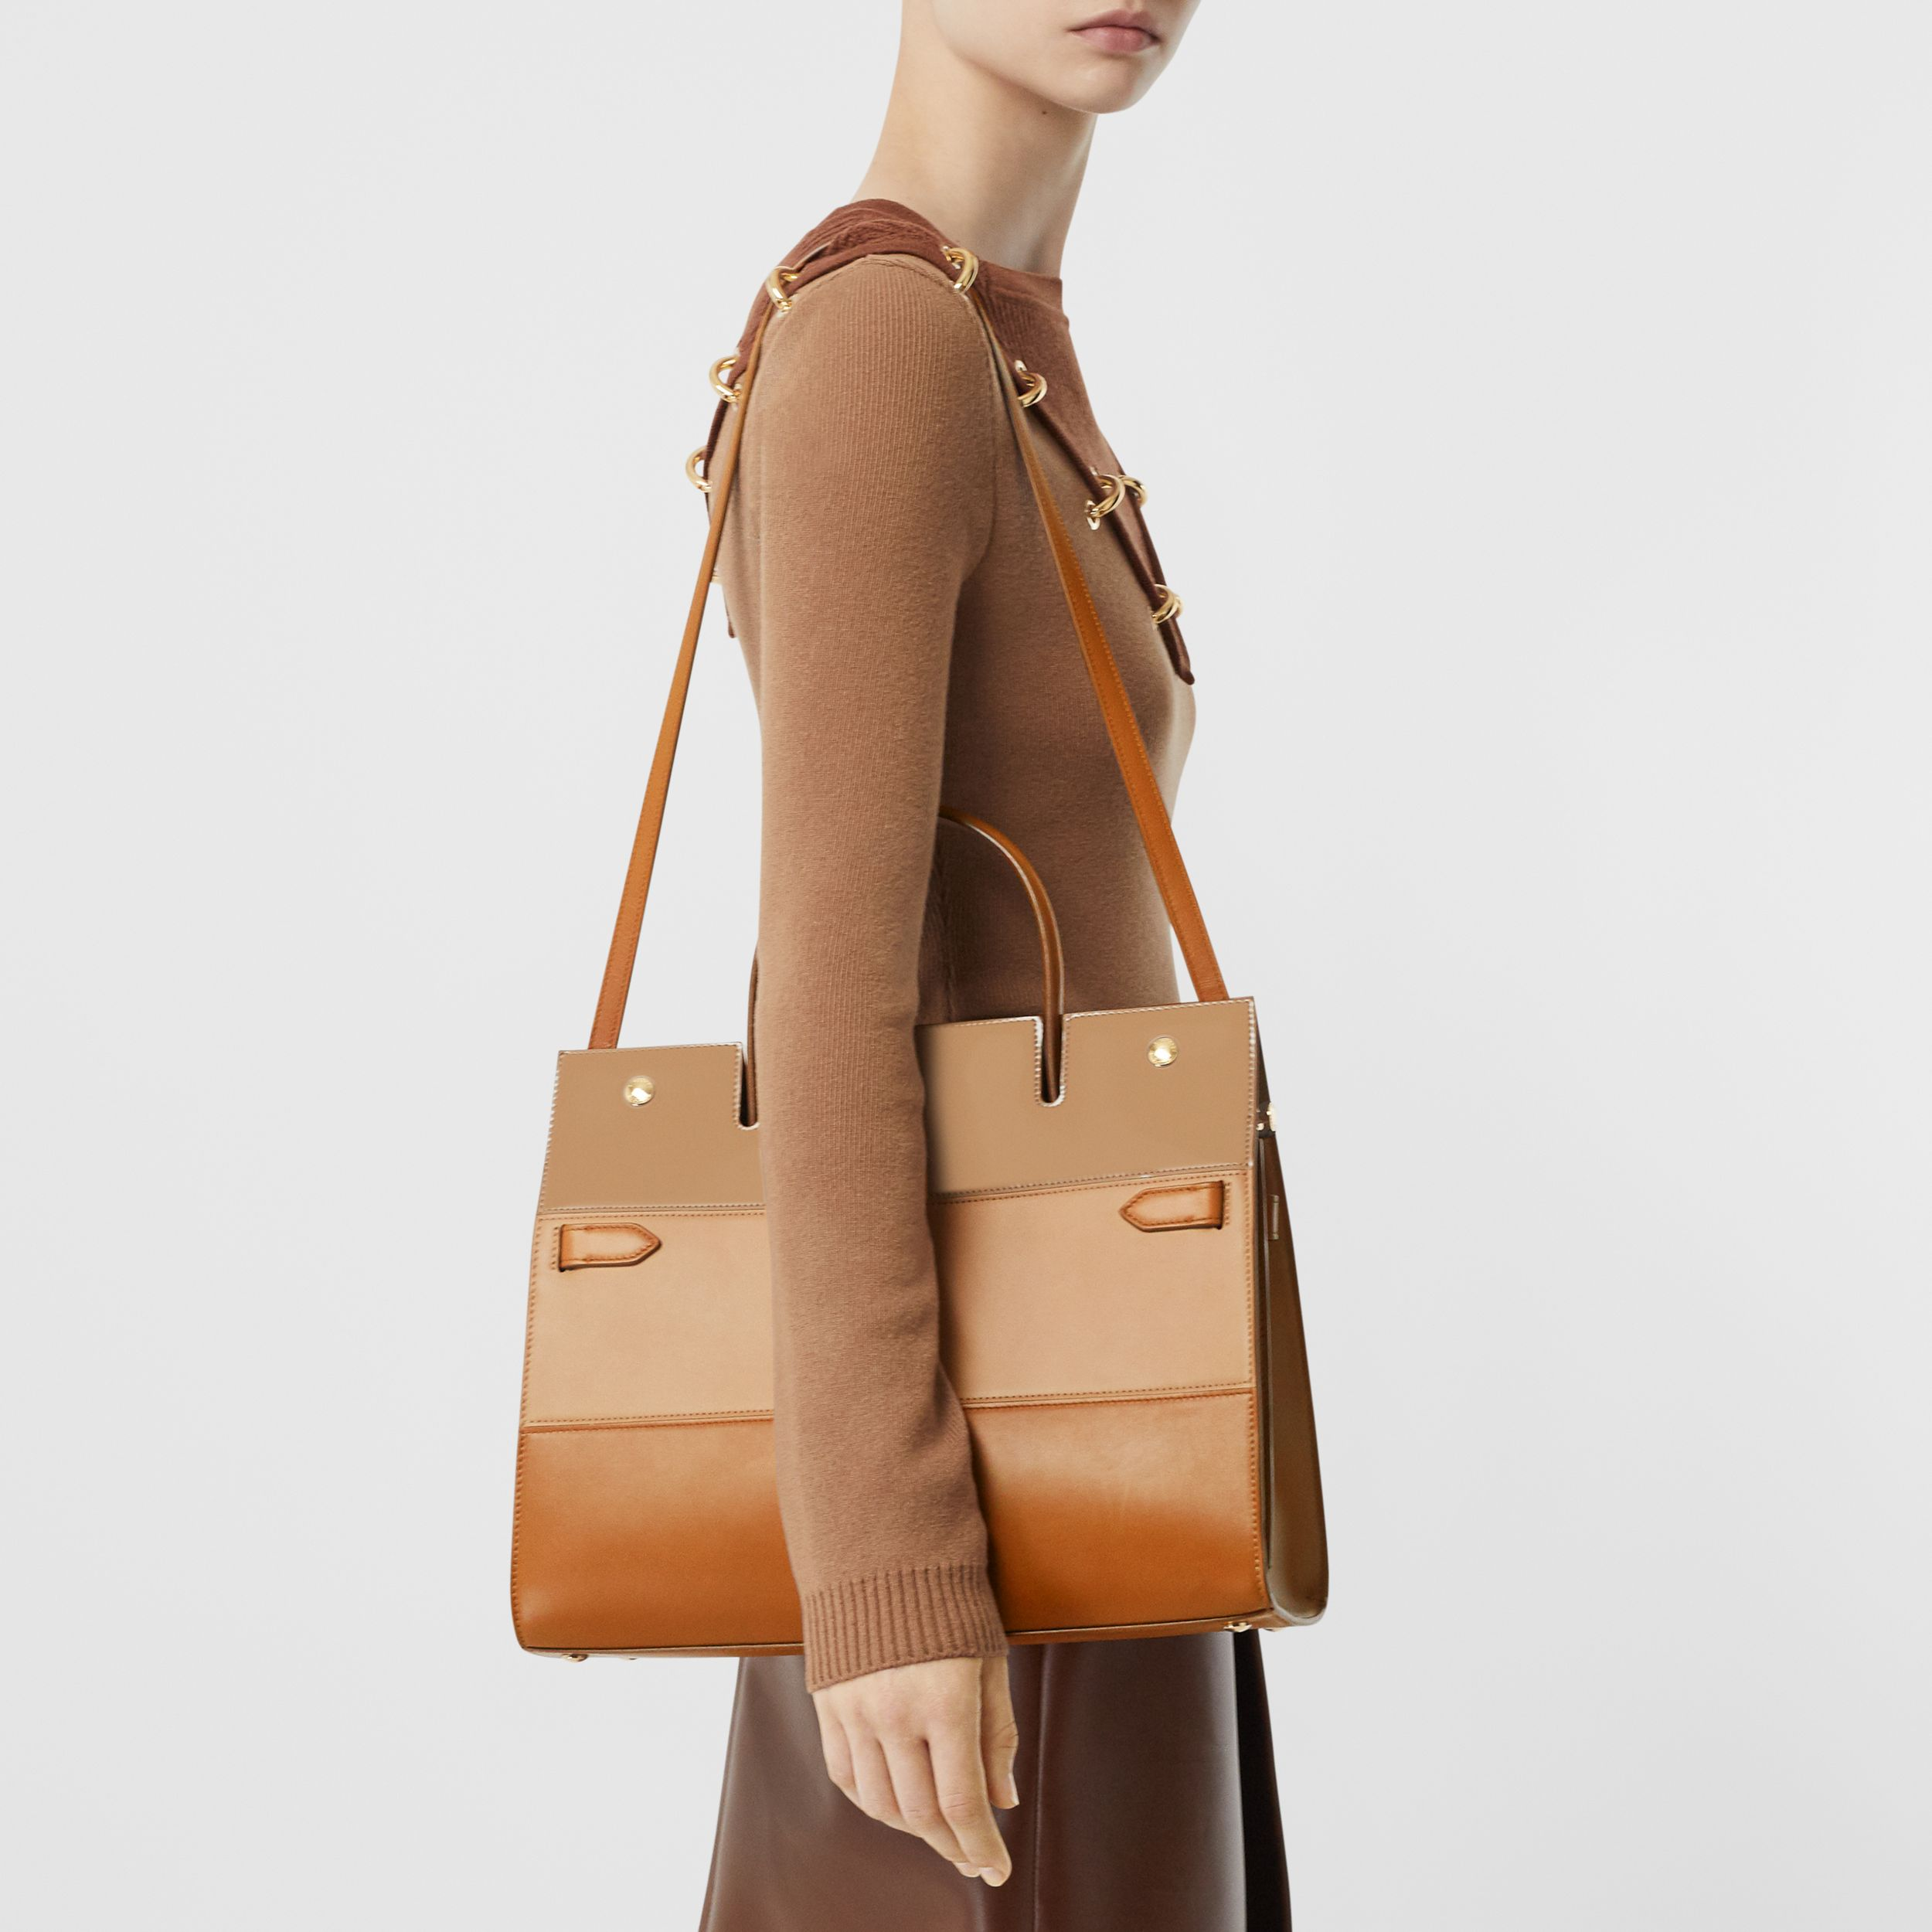 Medium Panelled Leather Title Bag in Soft Fawn - Women | Burberry - 3